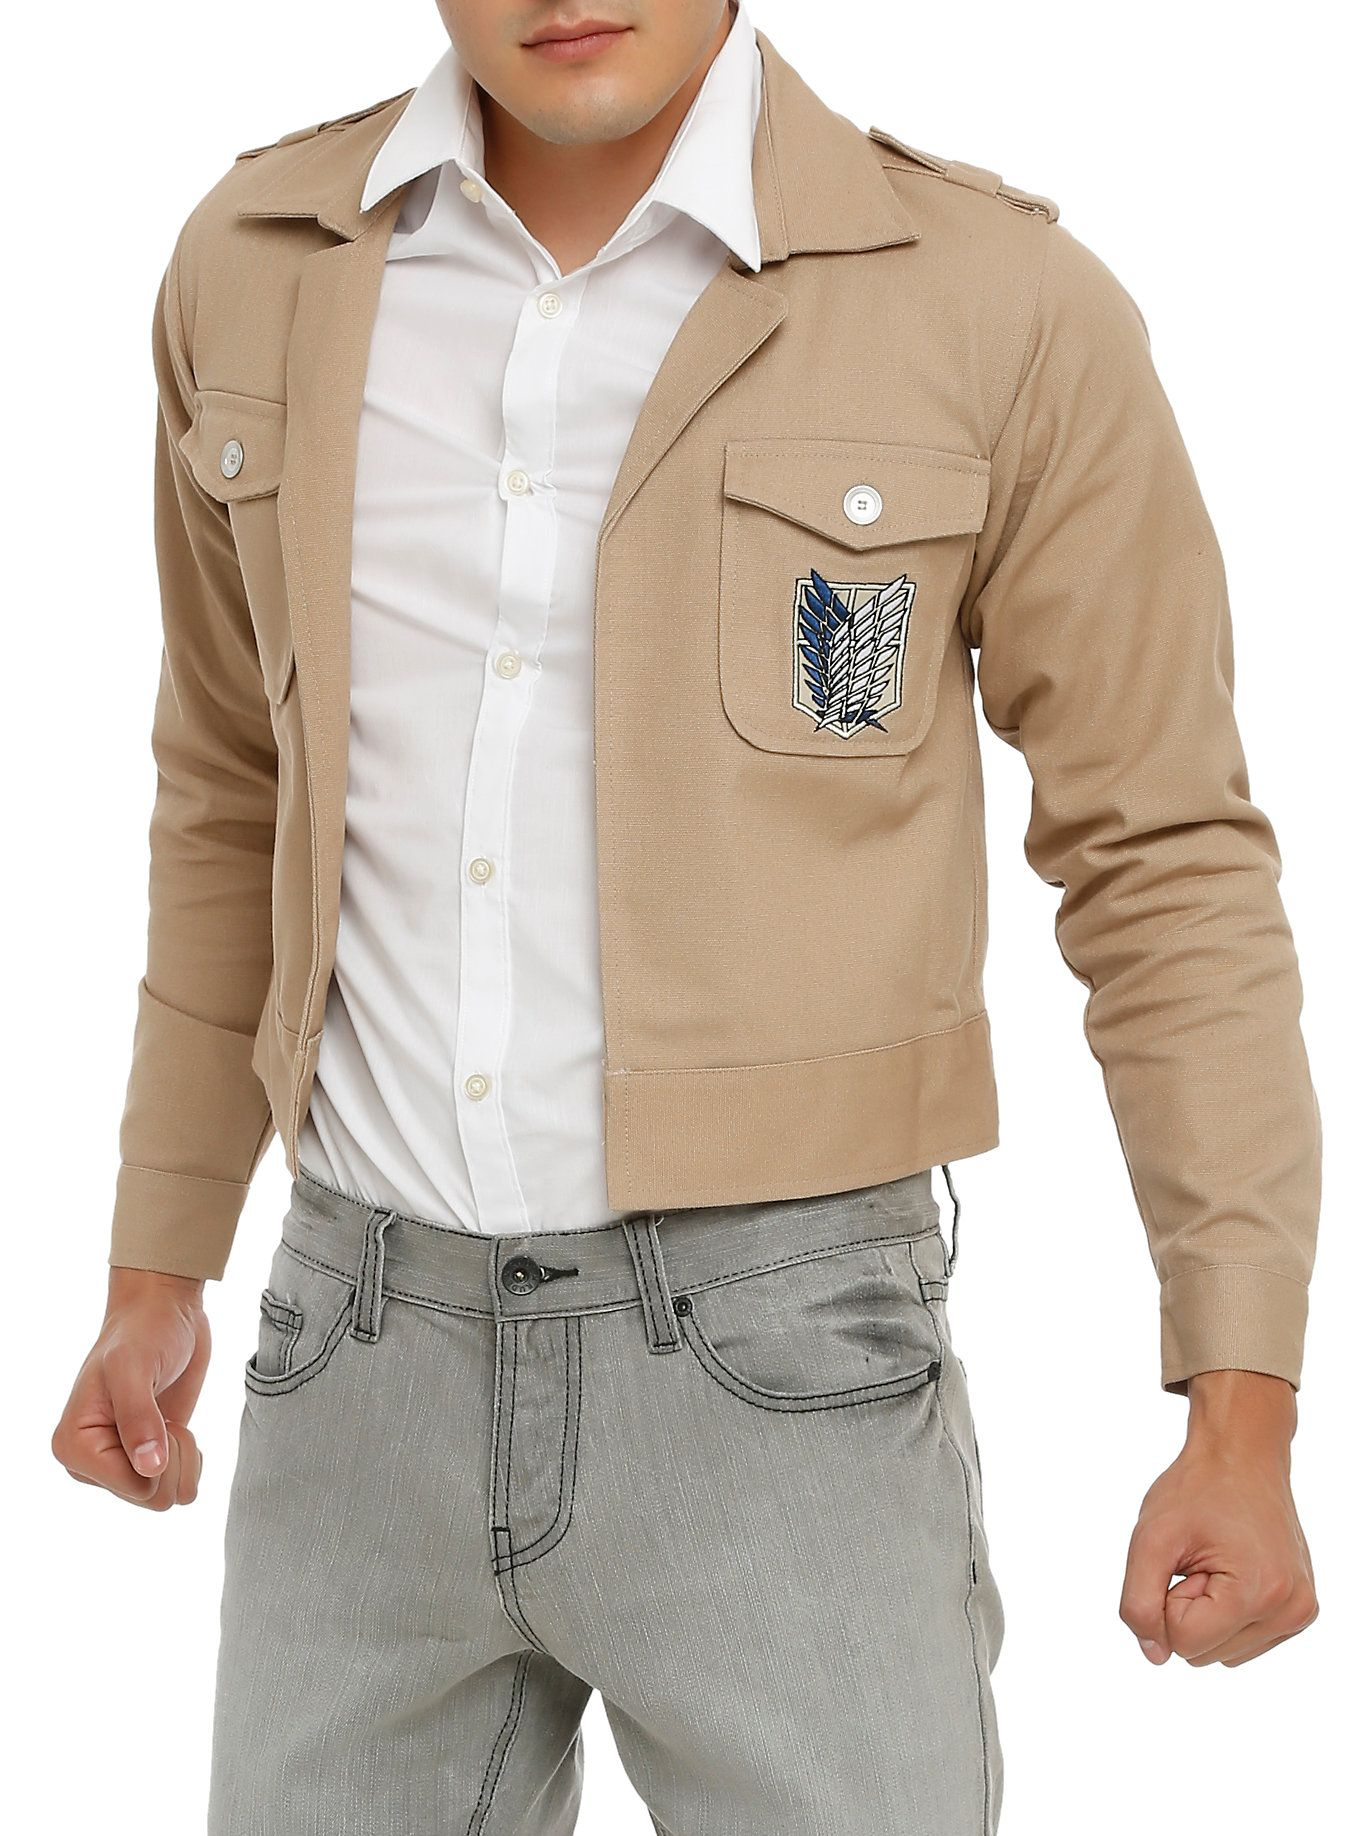 Attack On Titan Uniform Jacket Things I Want But Don T Need